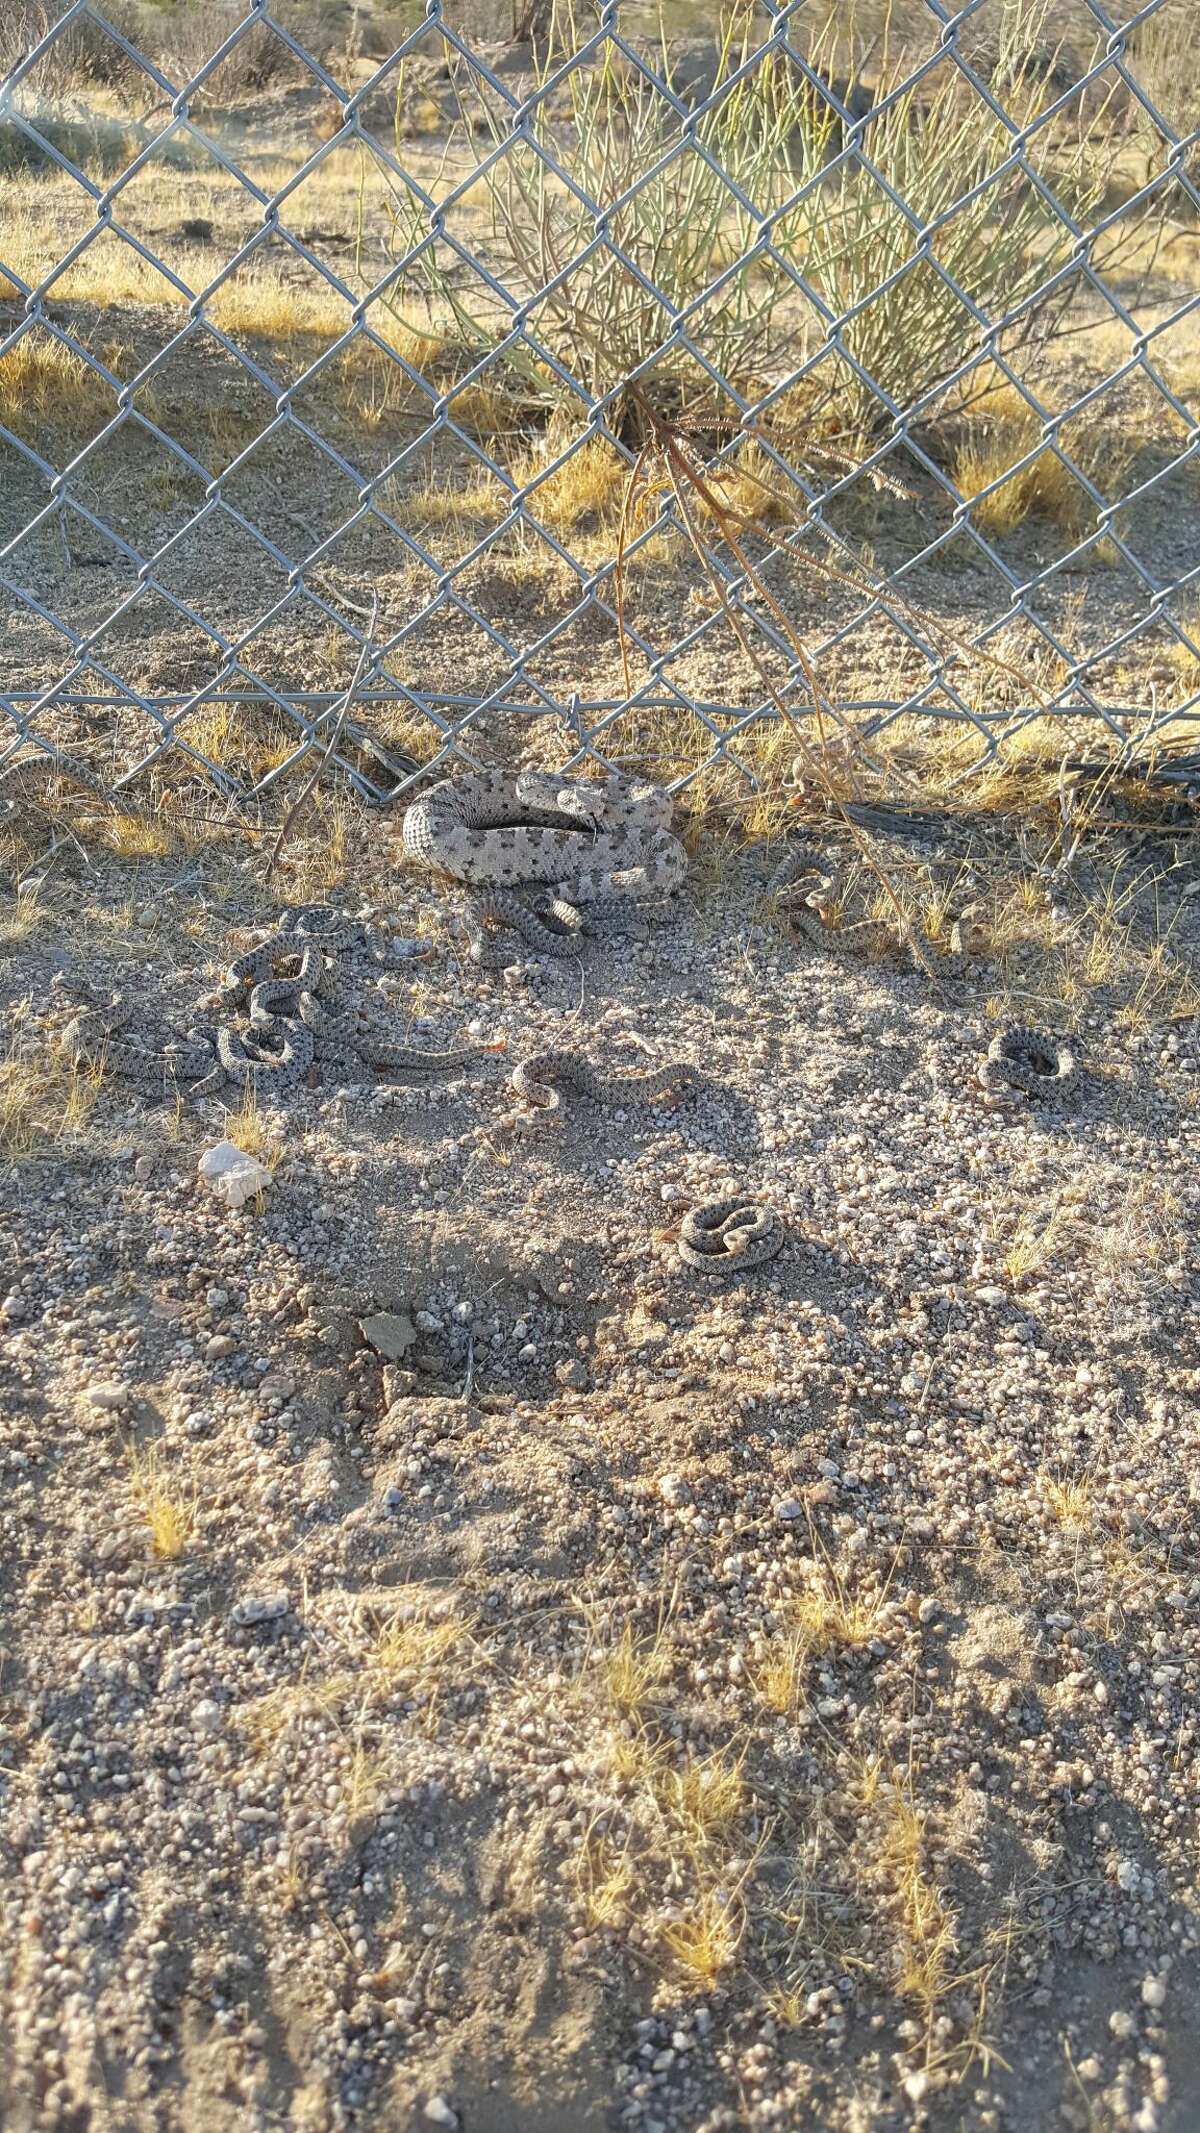 Animal Control Officer Shawna Villa-Rodriguez found not one, not two but 19 sidewinder rattlesnakes under the playhouse.